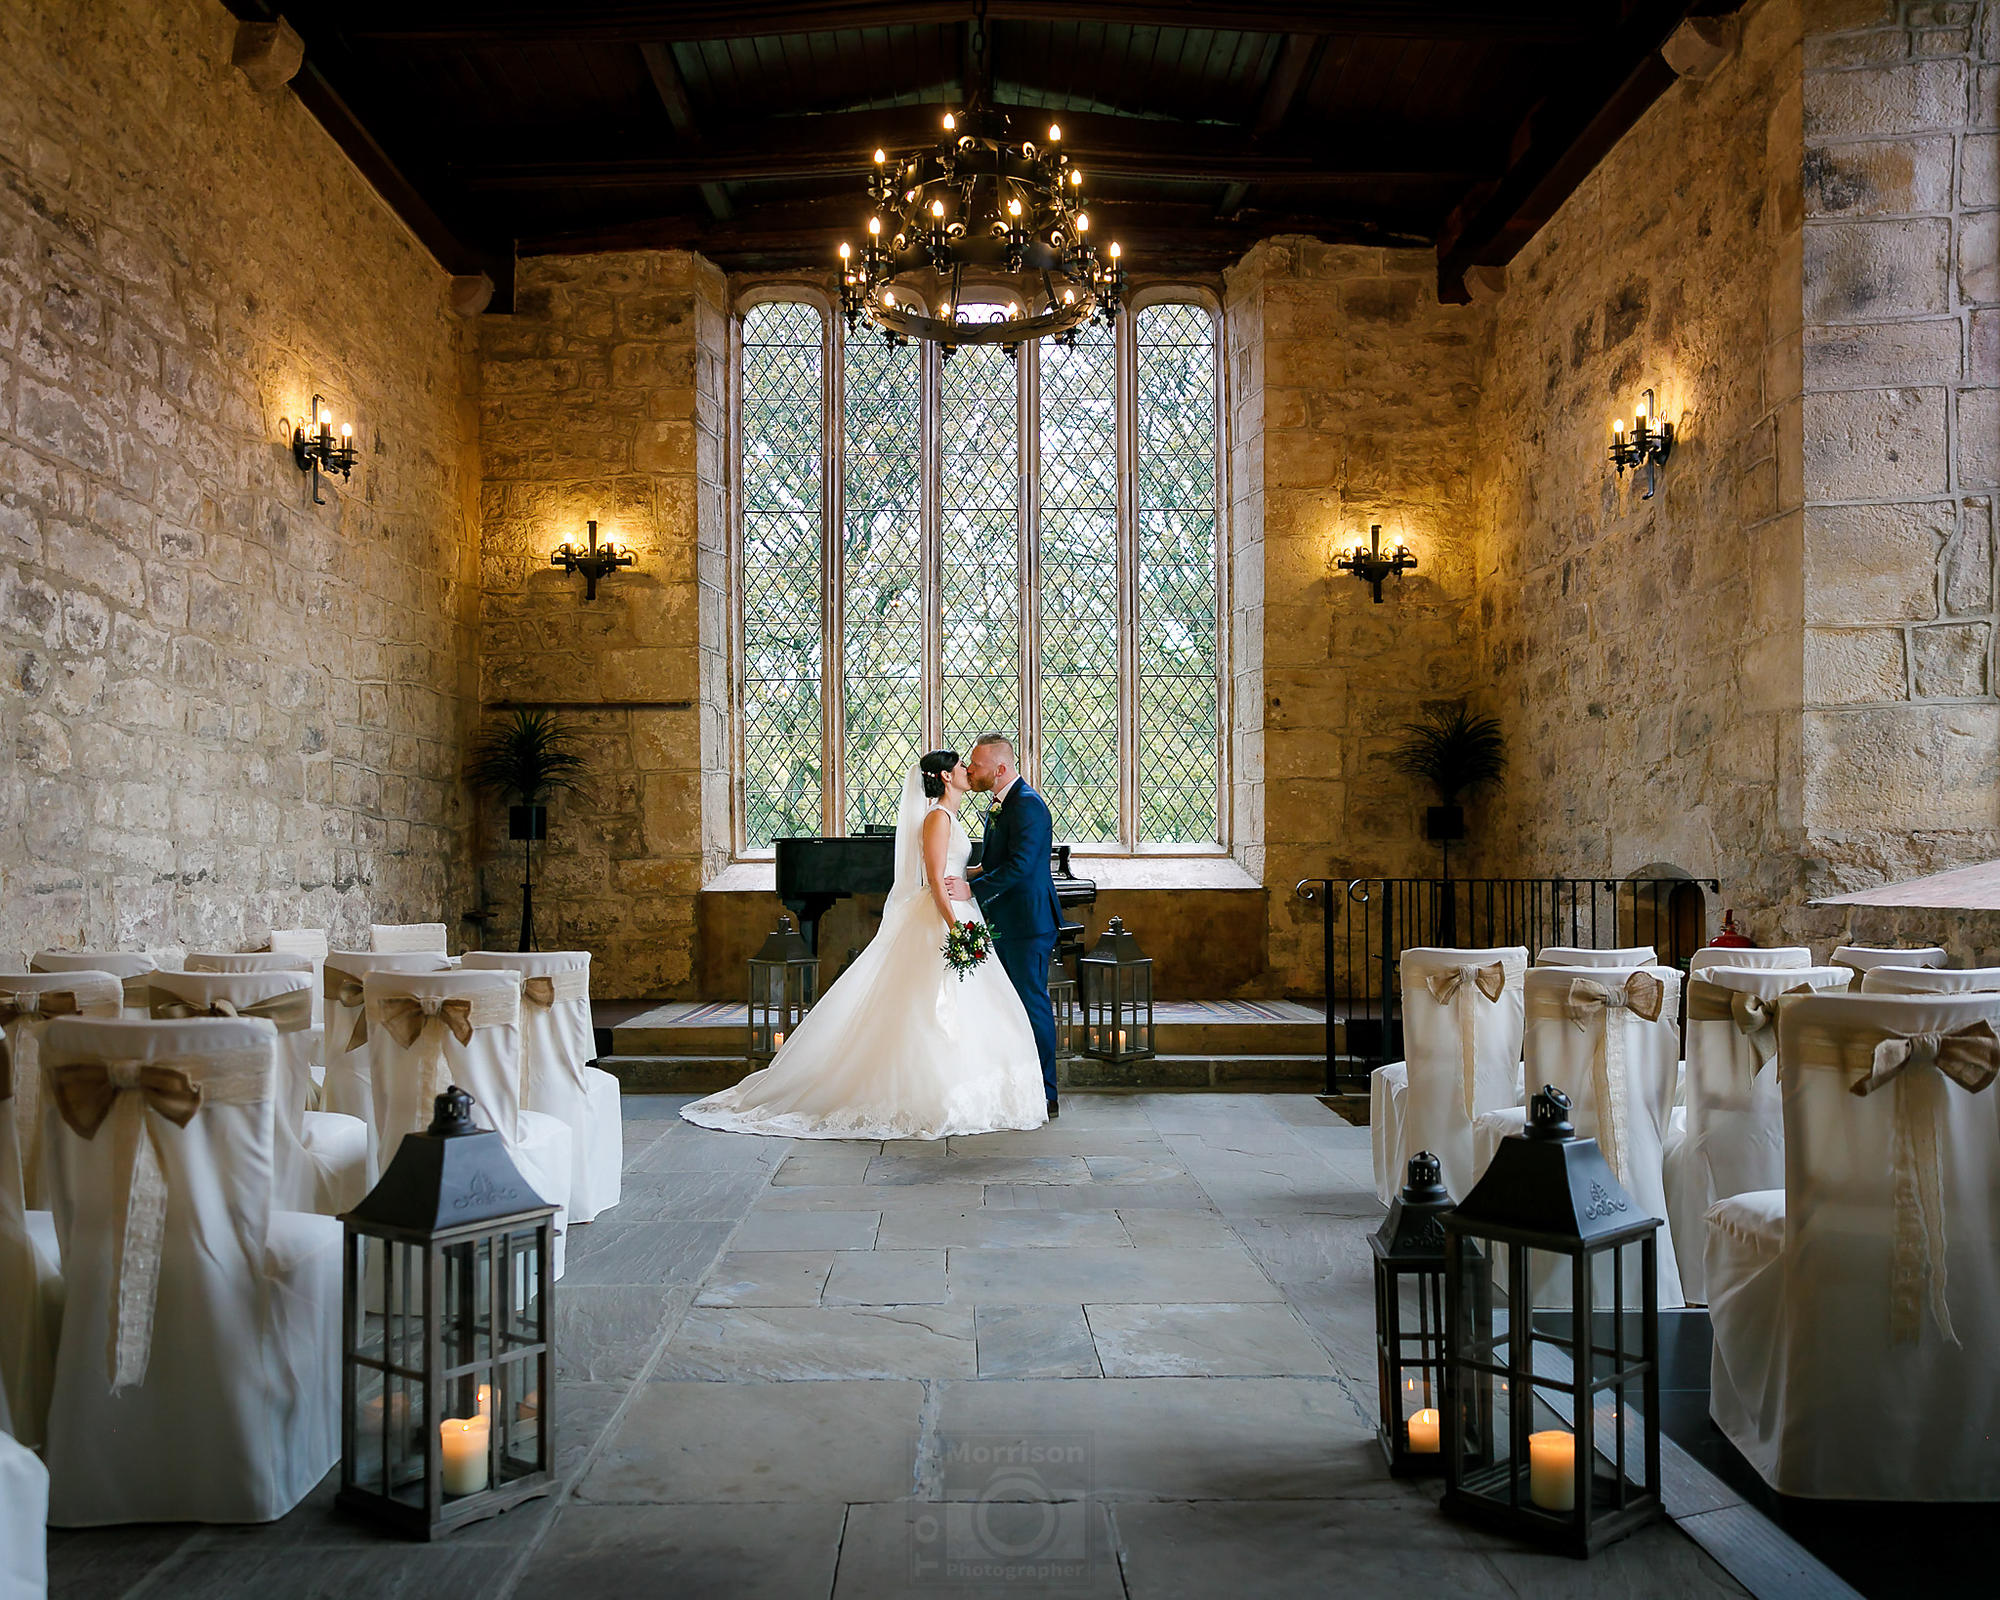 Wedding at The Priest's House & Barden Tower, Bolton Abbey, Skipton, North Yorkshire, UK